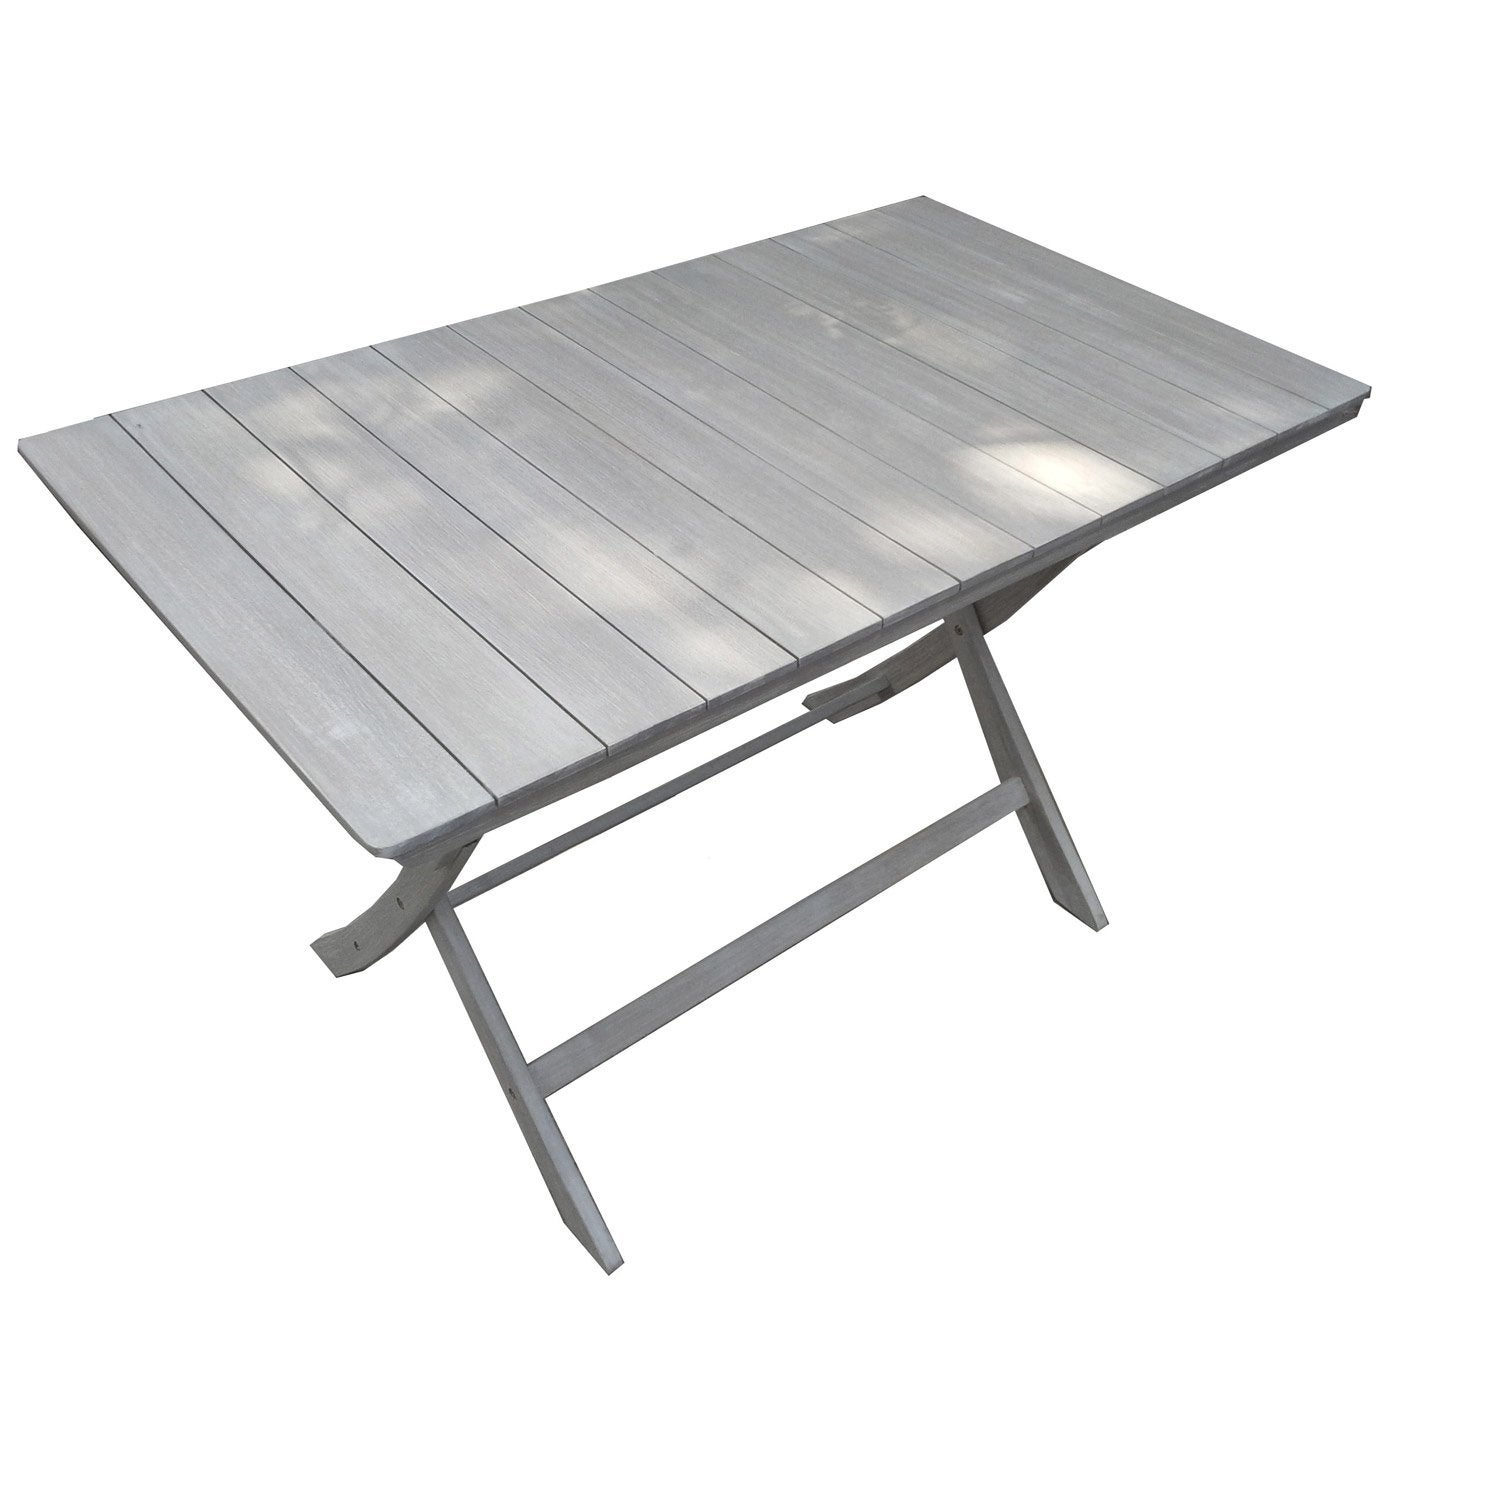 Table de jardin naterial portofino rectangulaire gris 4 for Table de jardin modulable